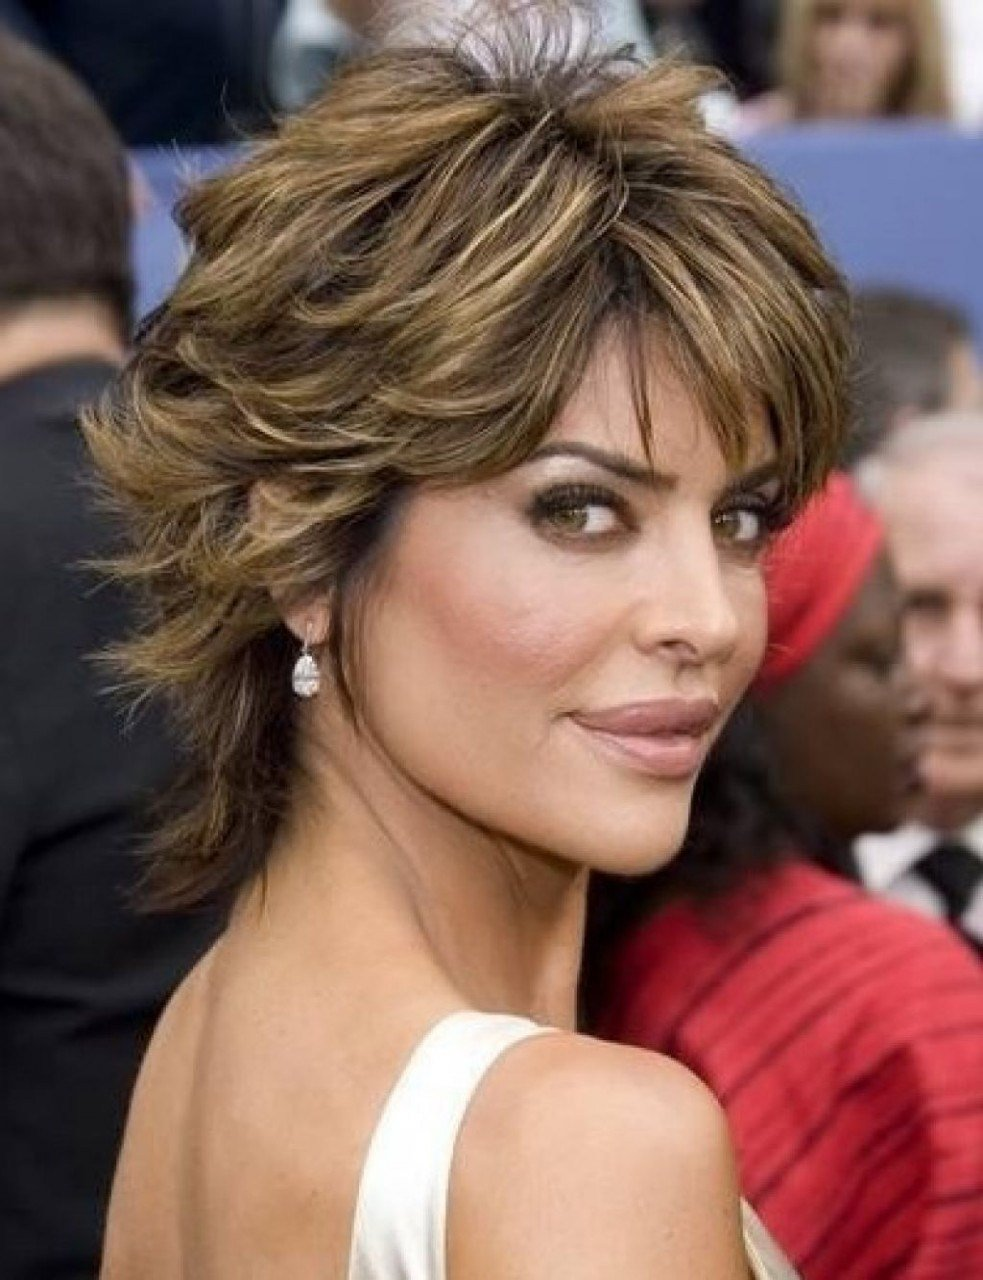 The Best Pictures Of Men S Short Haircuts Short Hairstyles Lisa Rinna Haircuts Hairstyles Ideas Pictures